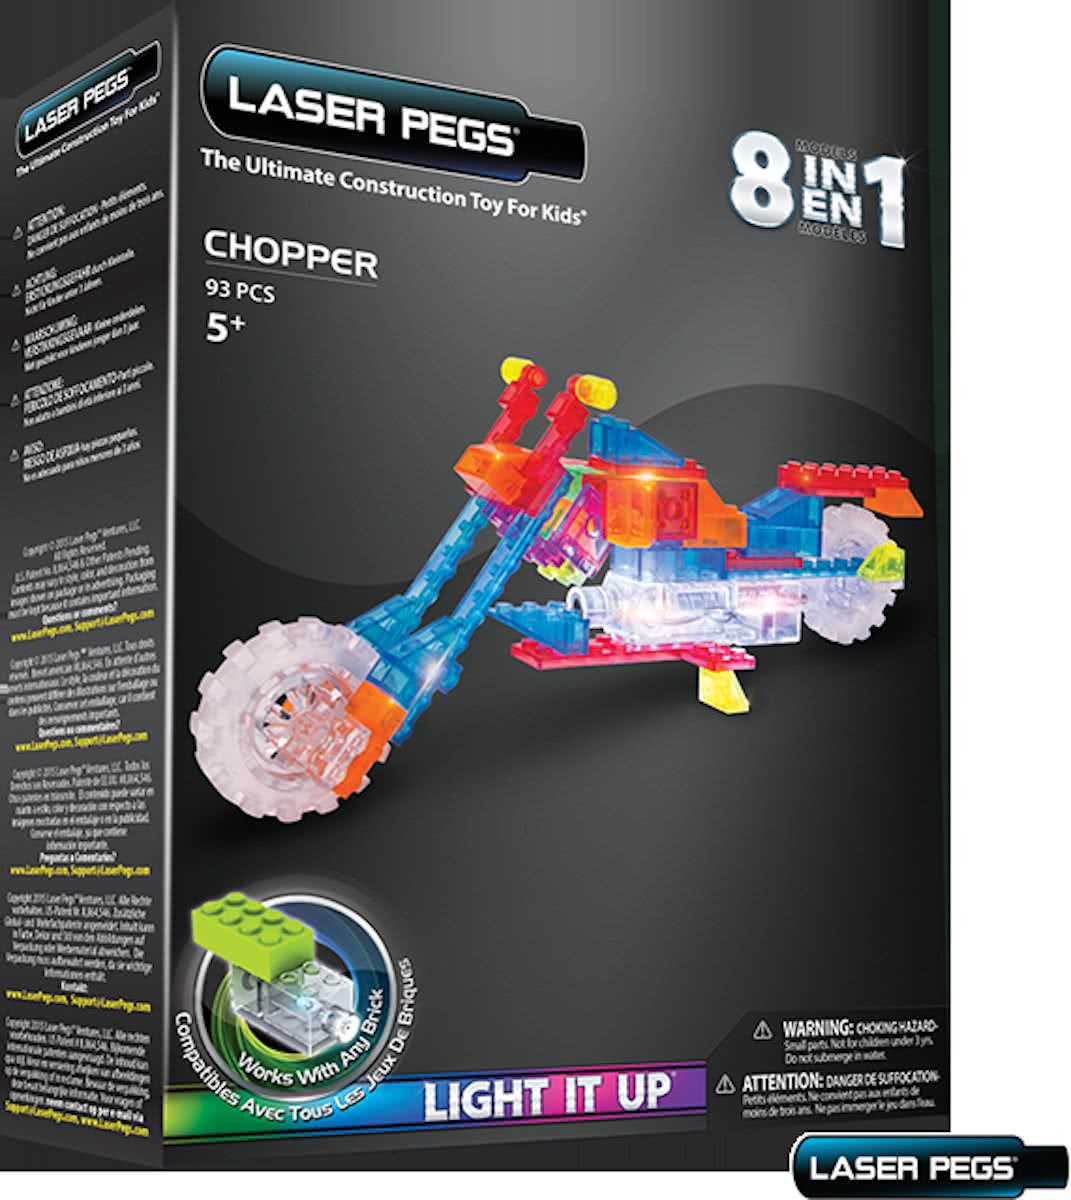 LaserPegs 8 in 1 Chopper